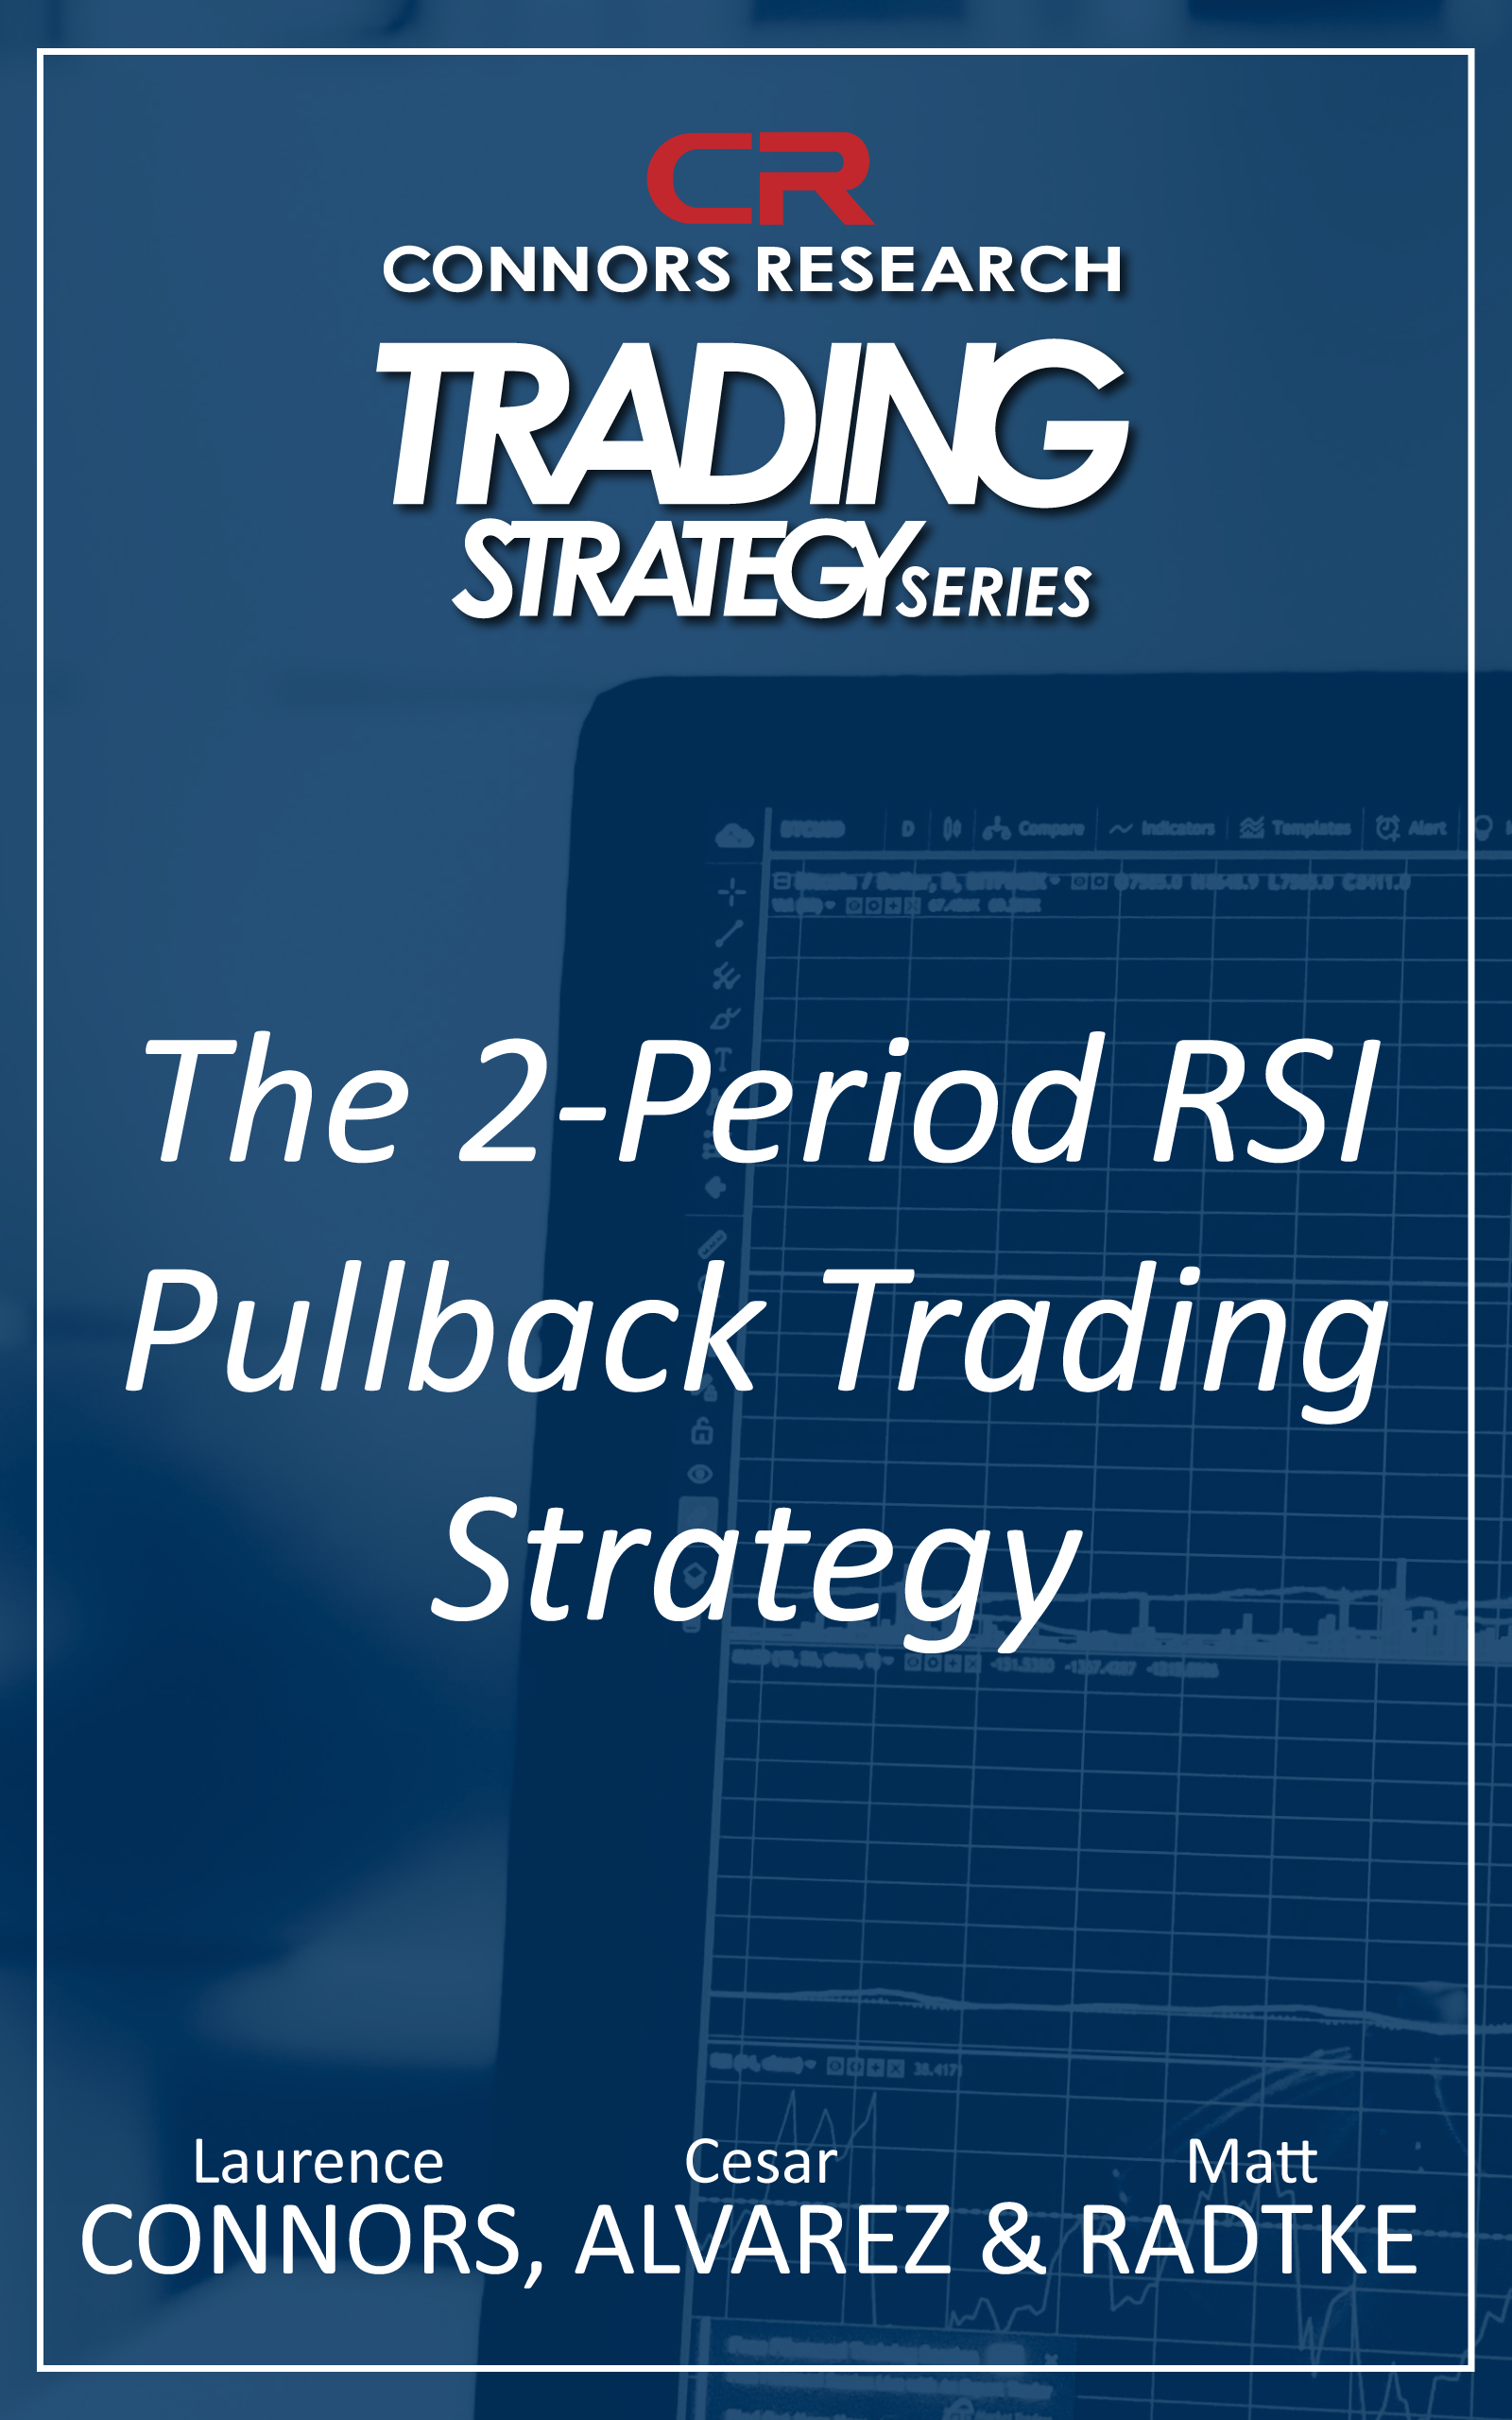 Connors Research Trading Strategy Series: The 2‐Period RSI Pullback Trading Strategy BOO-CRRSI-D